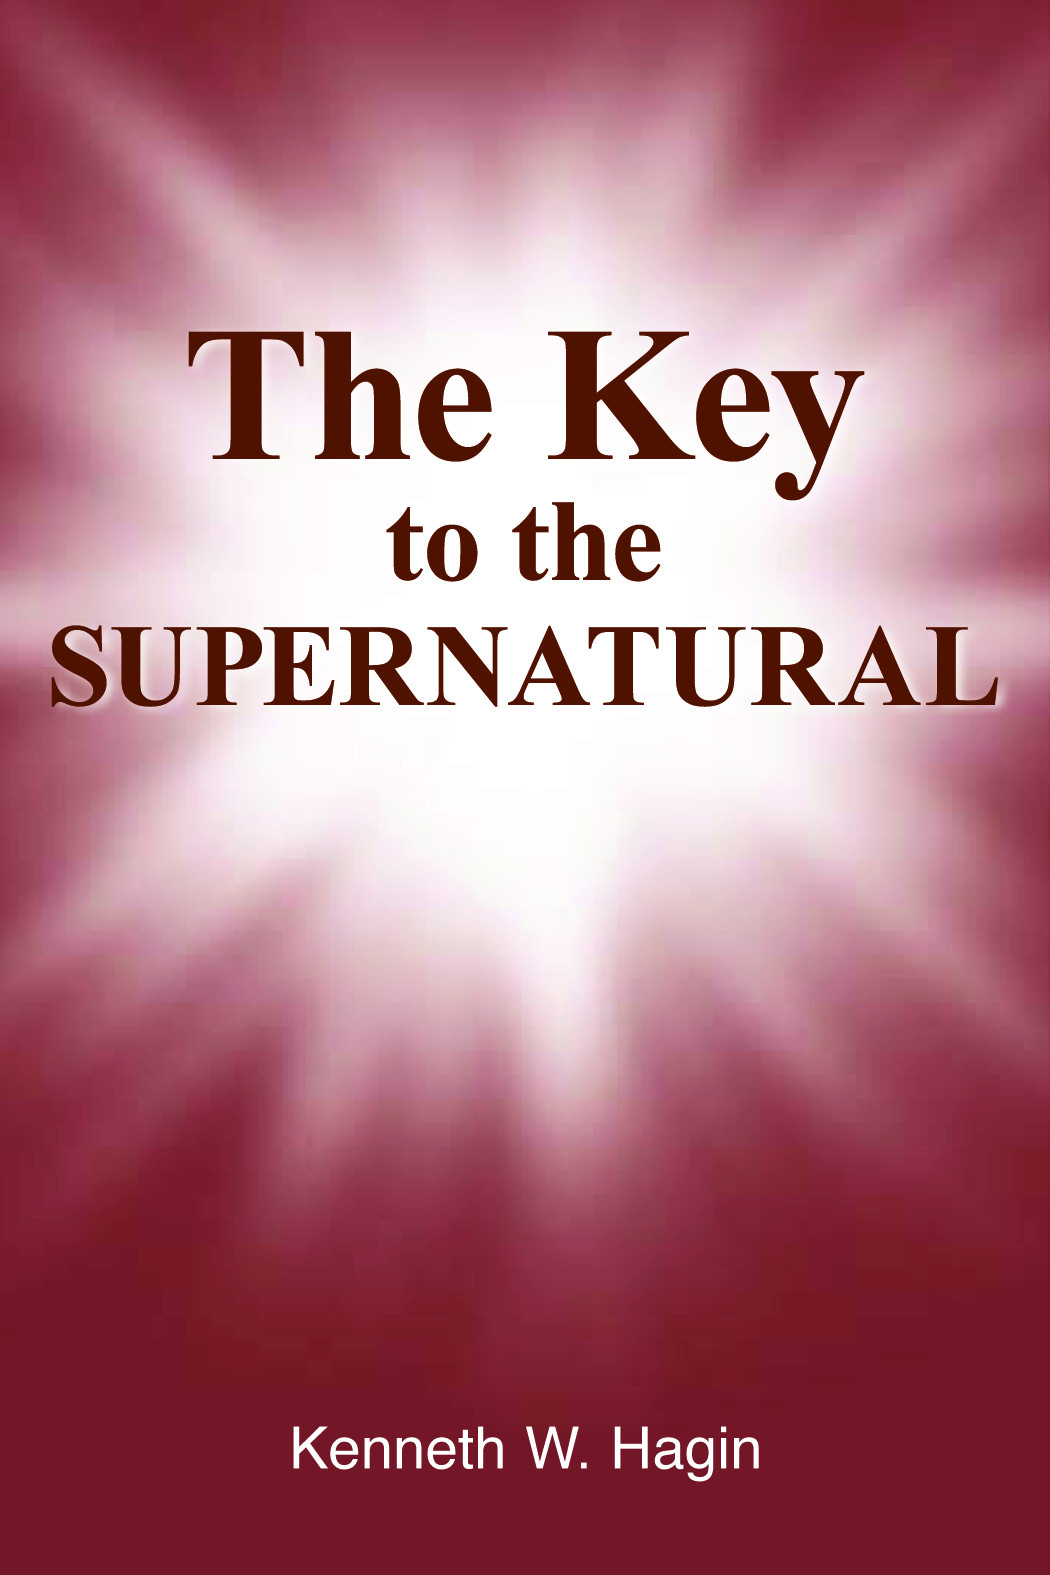 The Key To The Supernatural (Book)